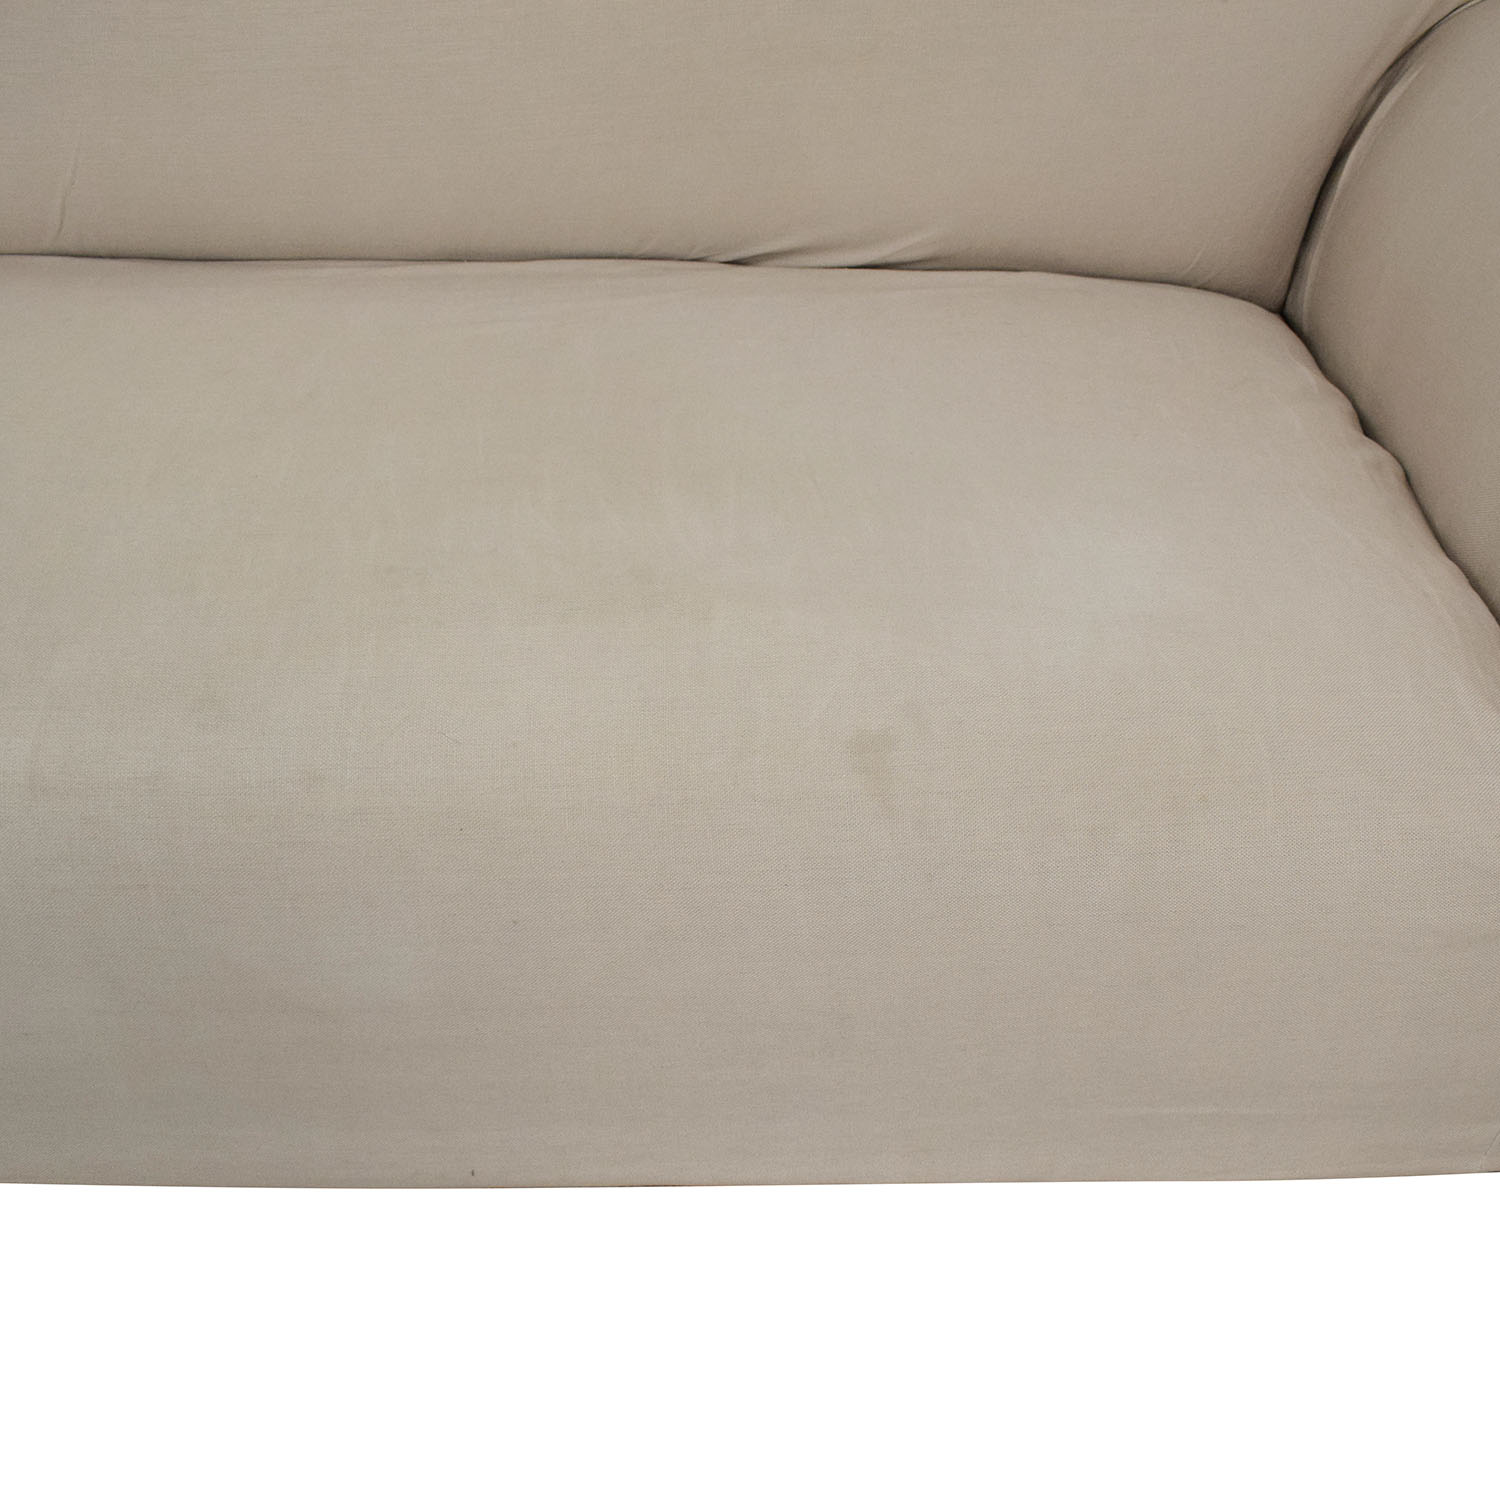 buy Holly Hunt Holly Hunt Christian Liaigre Basse Terre Sofa online